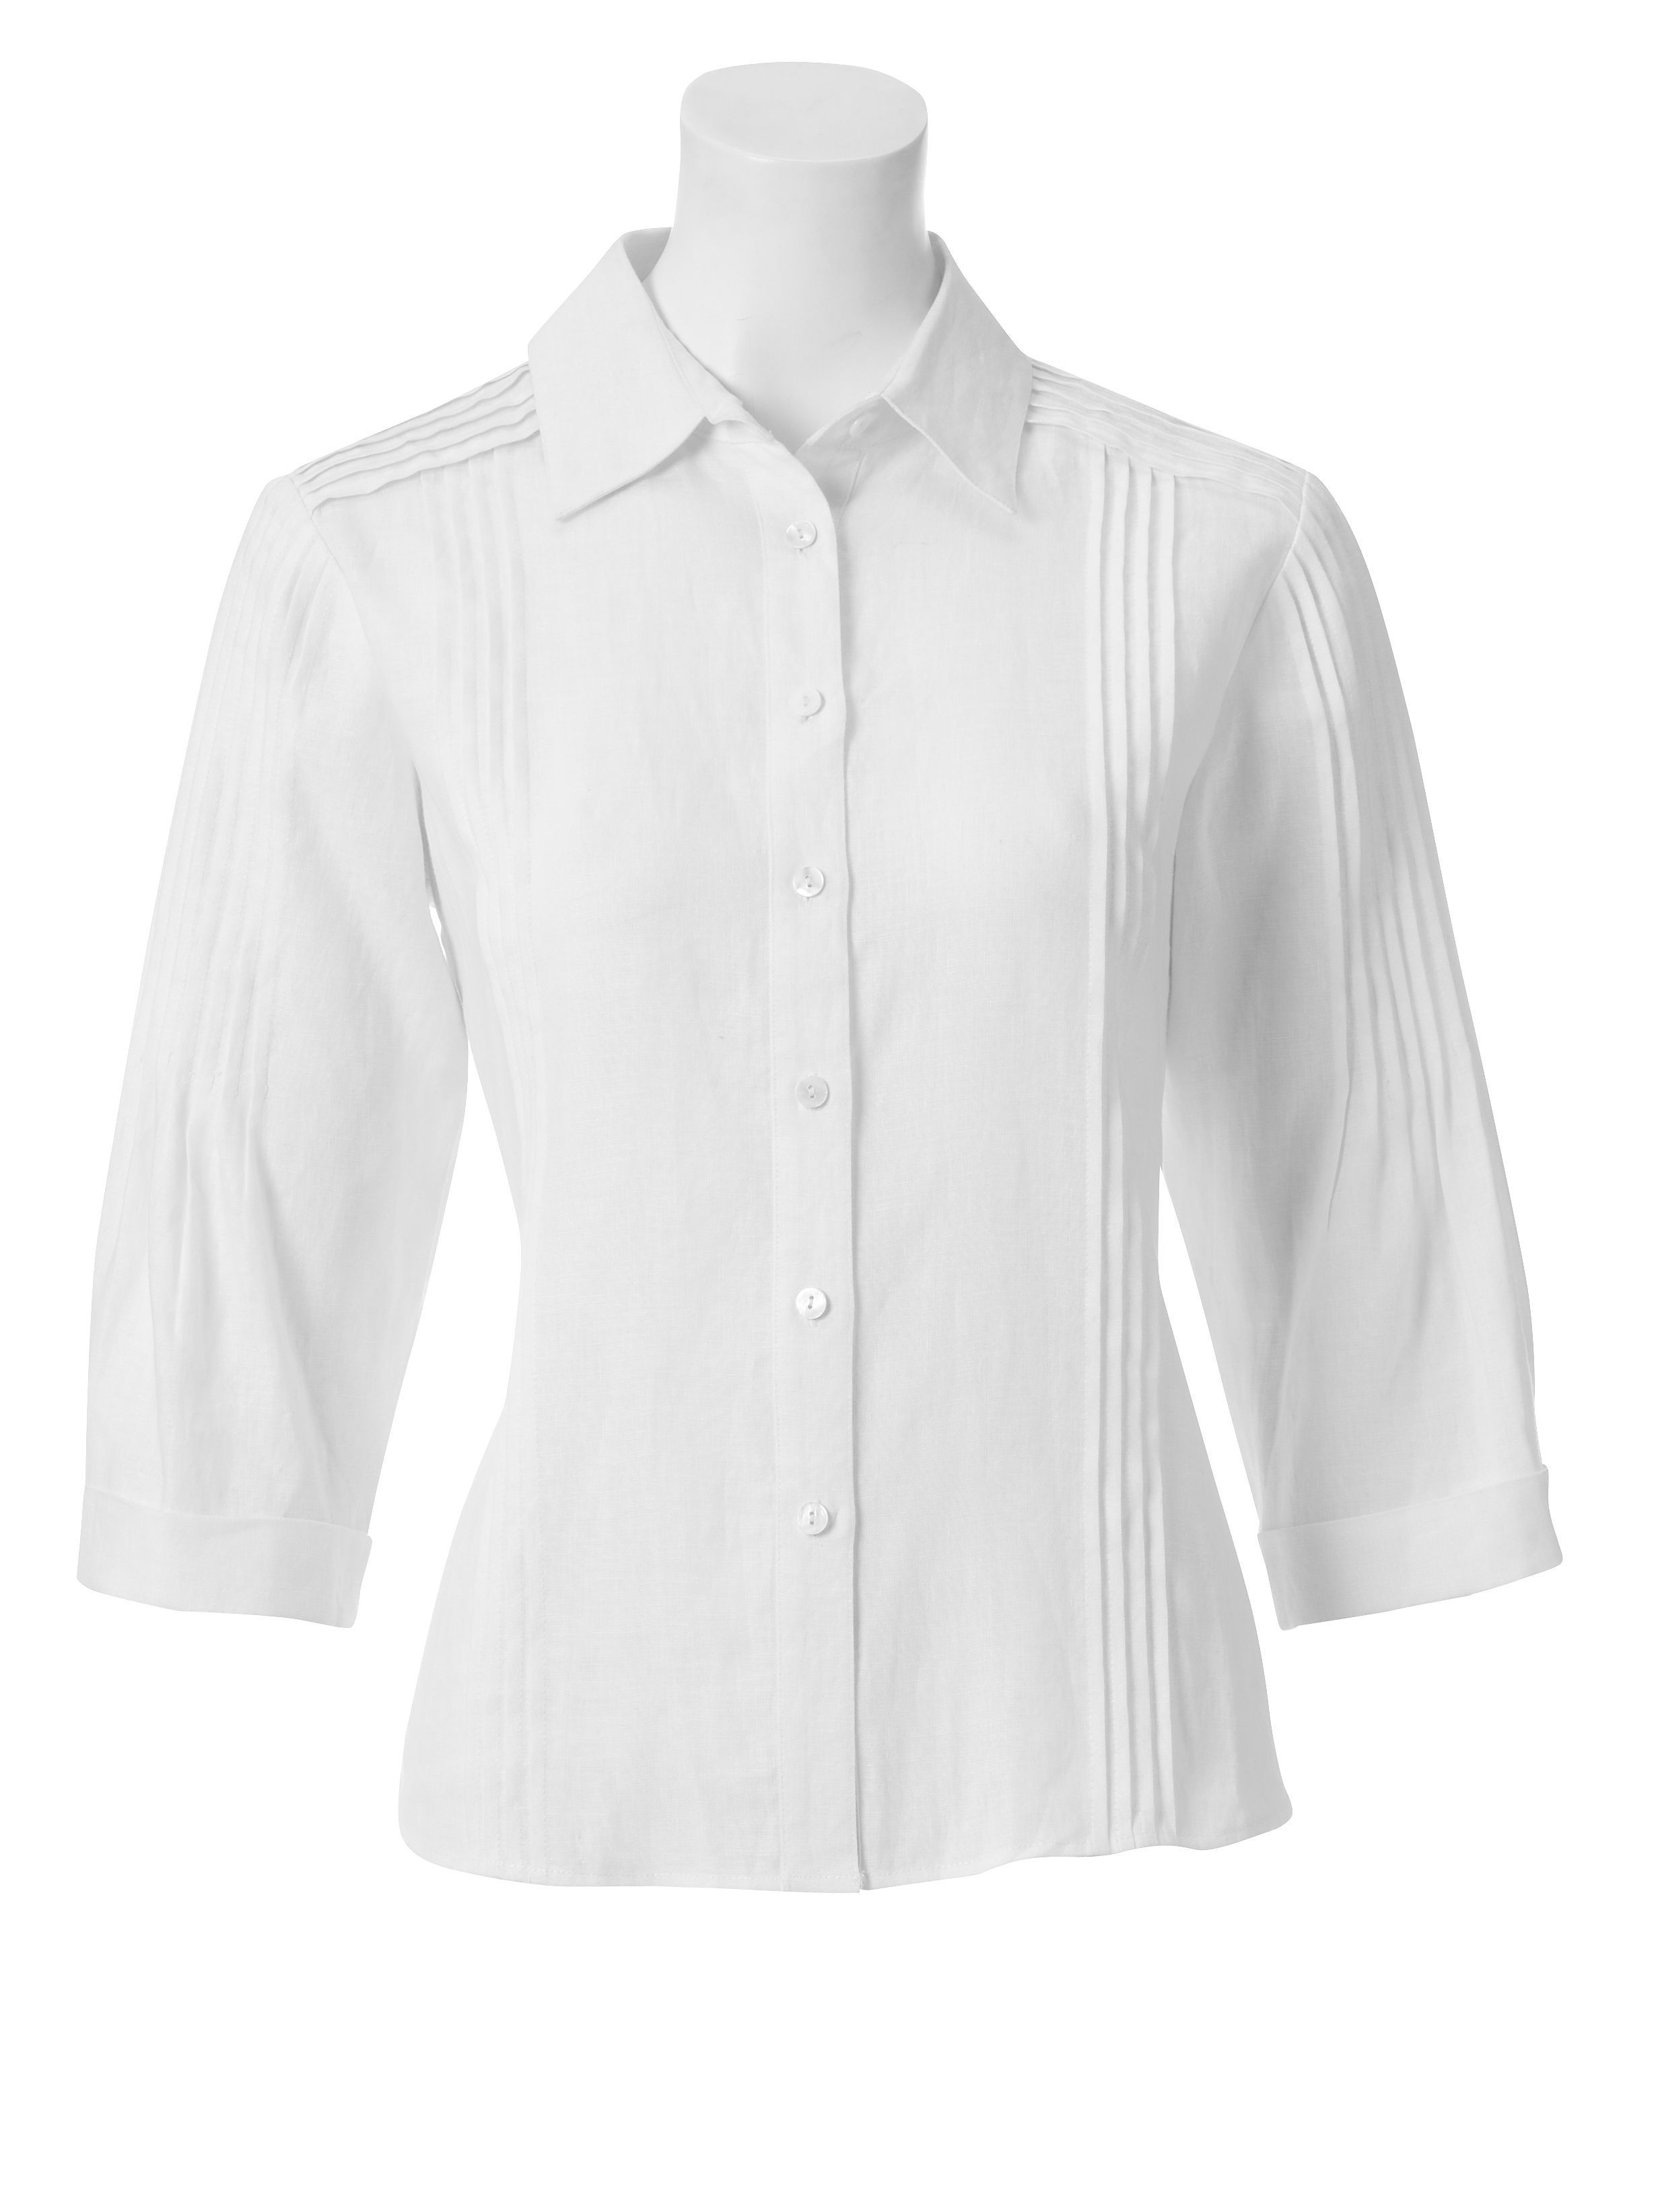 Paul Costelloe Pintuck detail blouse White product image